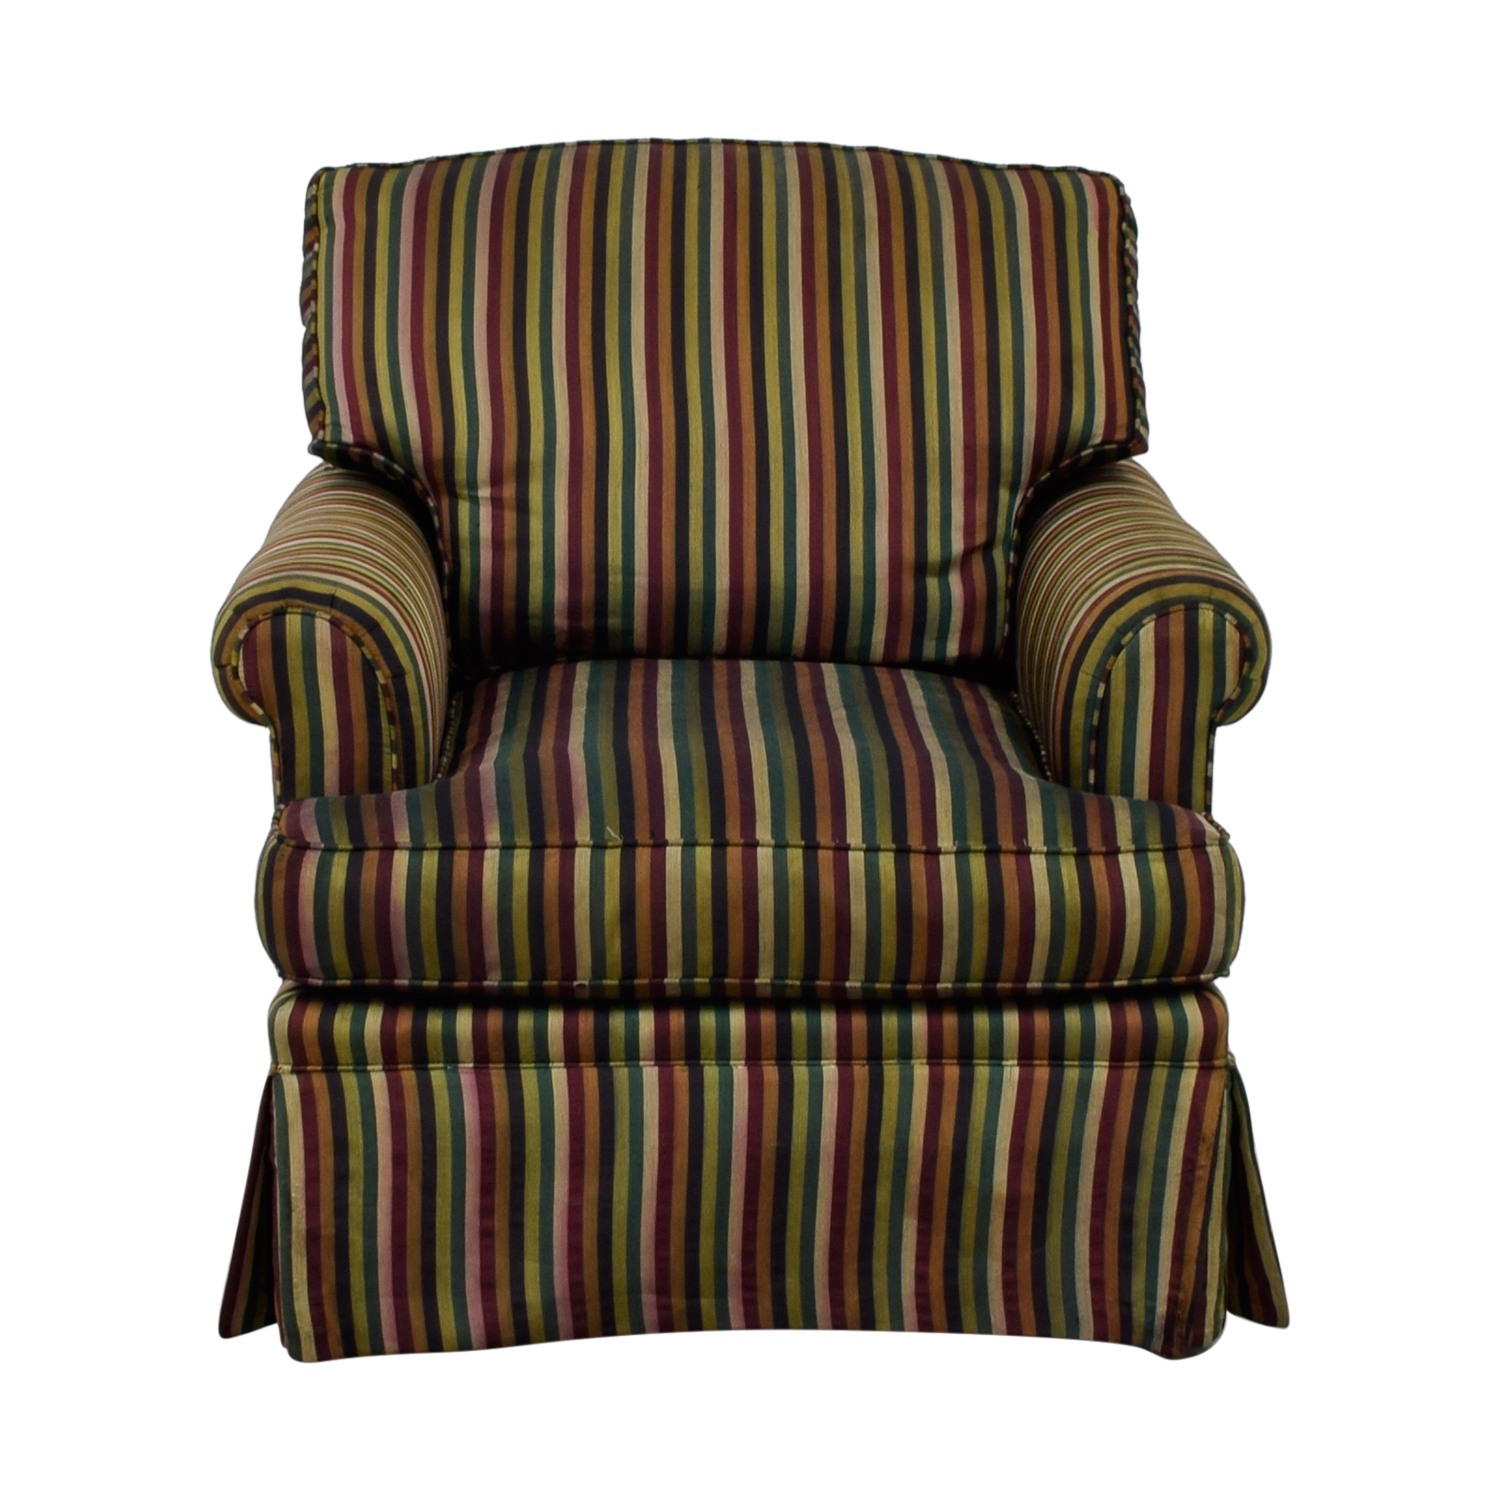 The Lane Company The Lane Company Pearson Stripe Chair dimensions